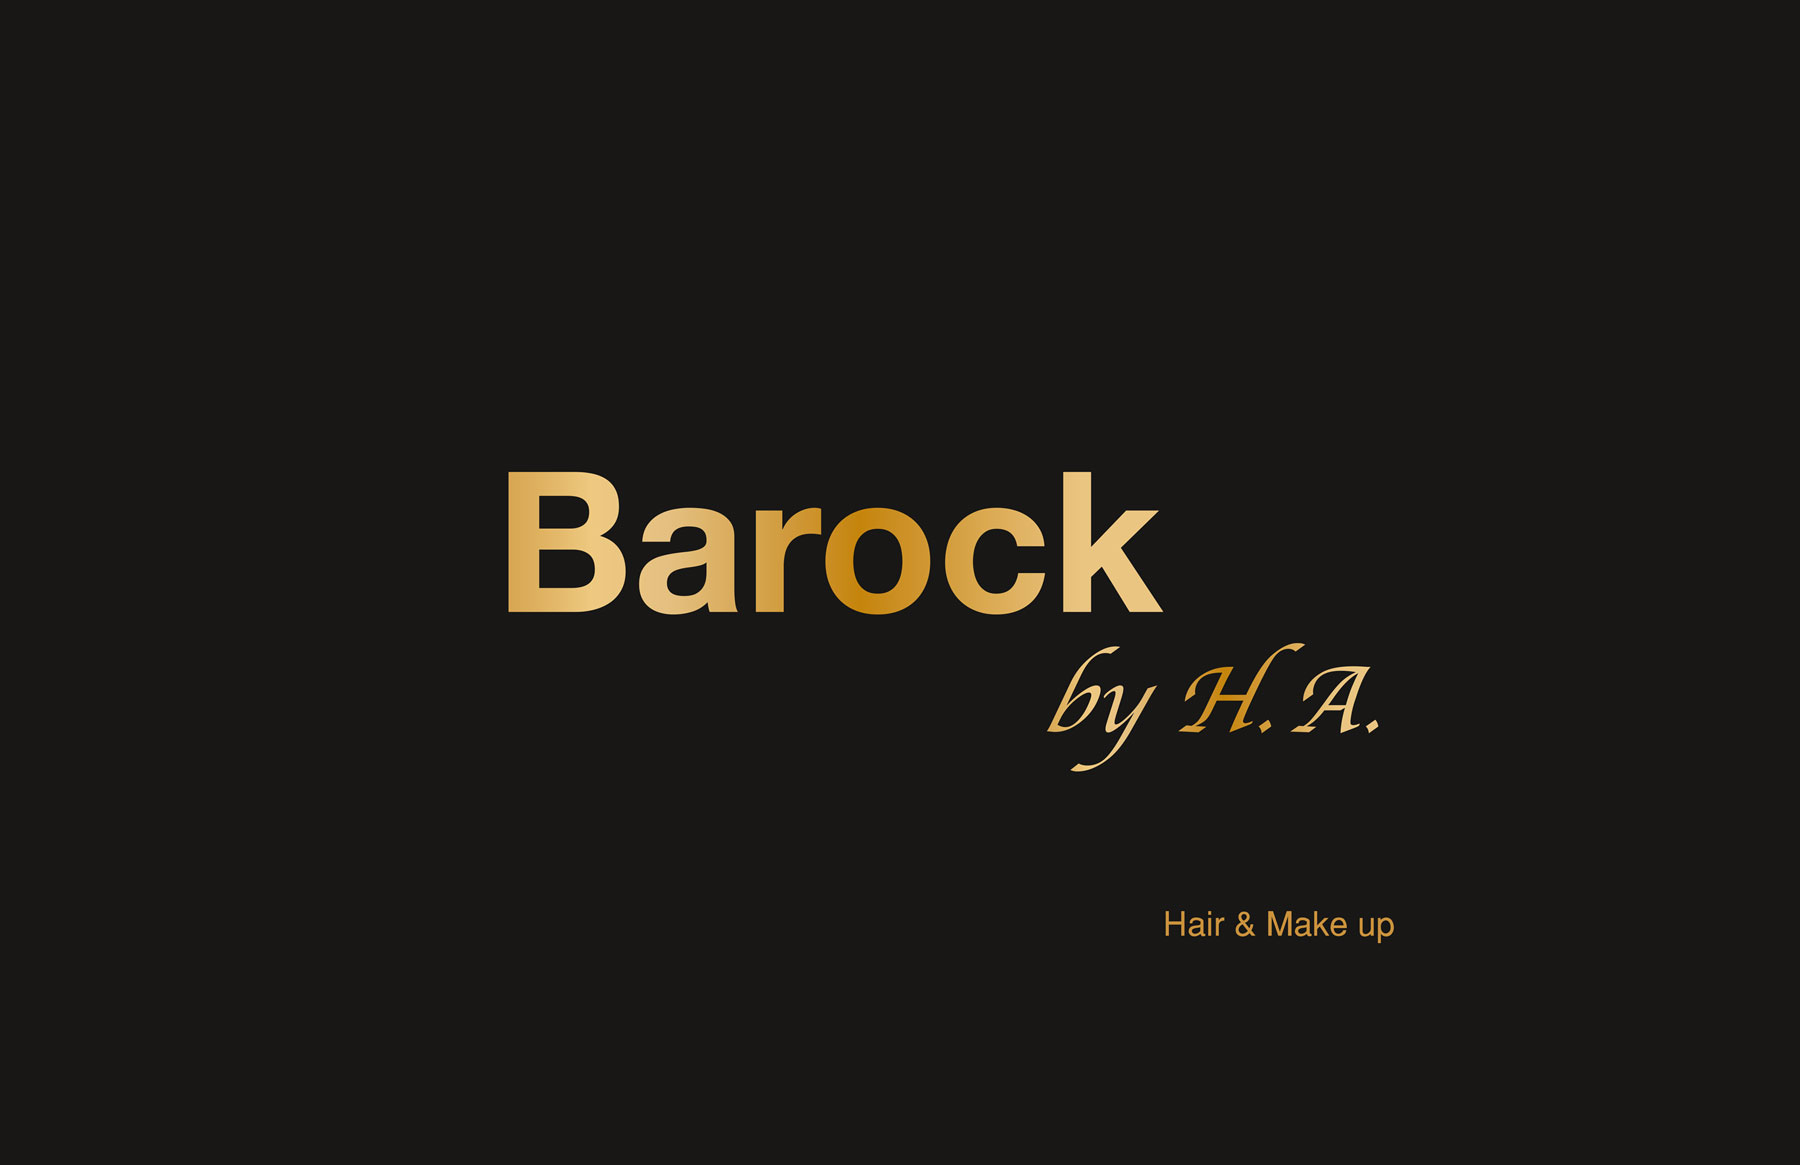 barack by h a hair make up. Black Bedroom Furniture Sets. Home Design Ideas